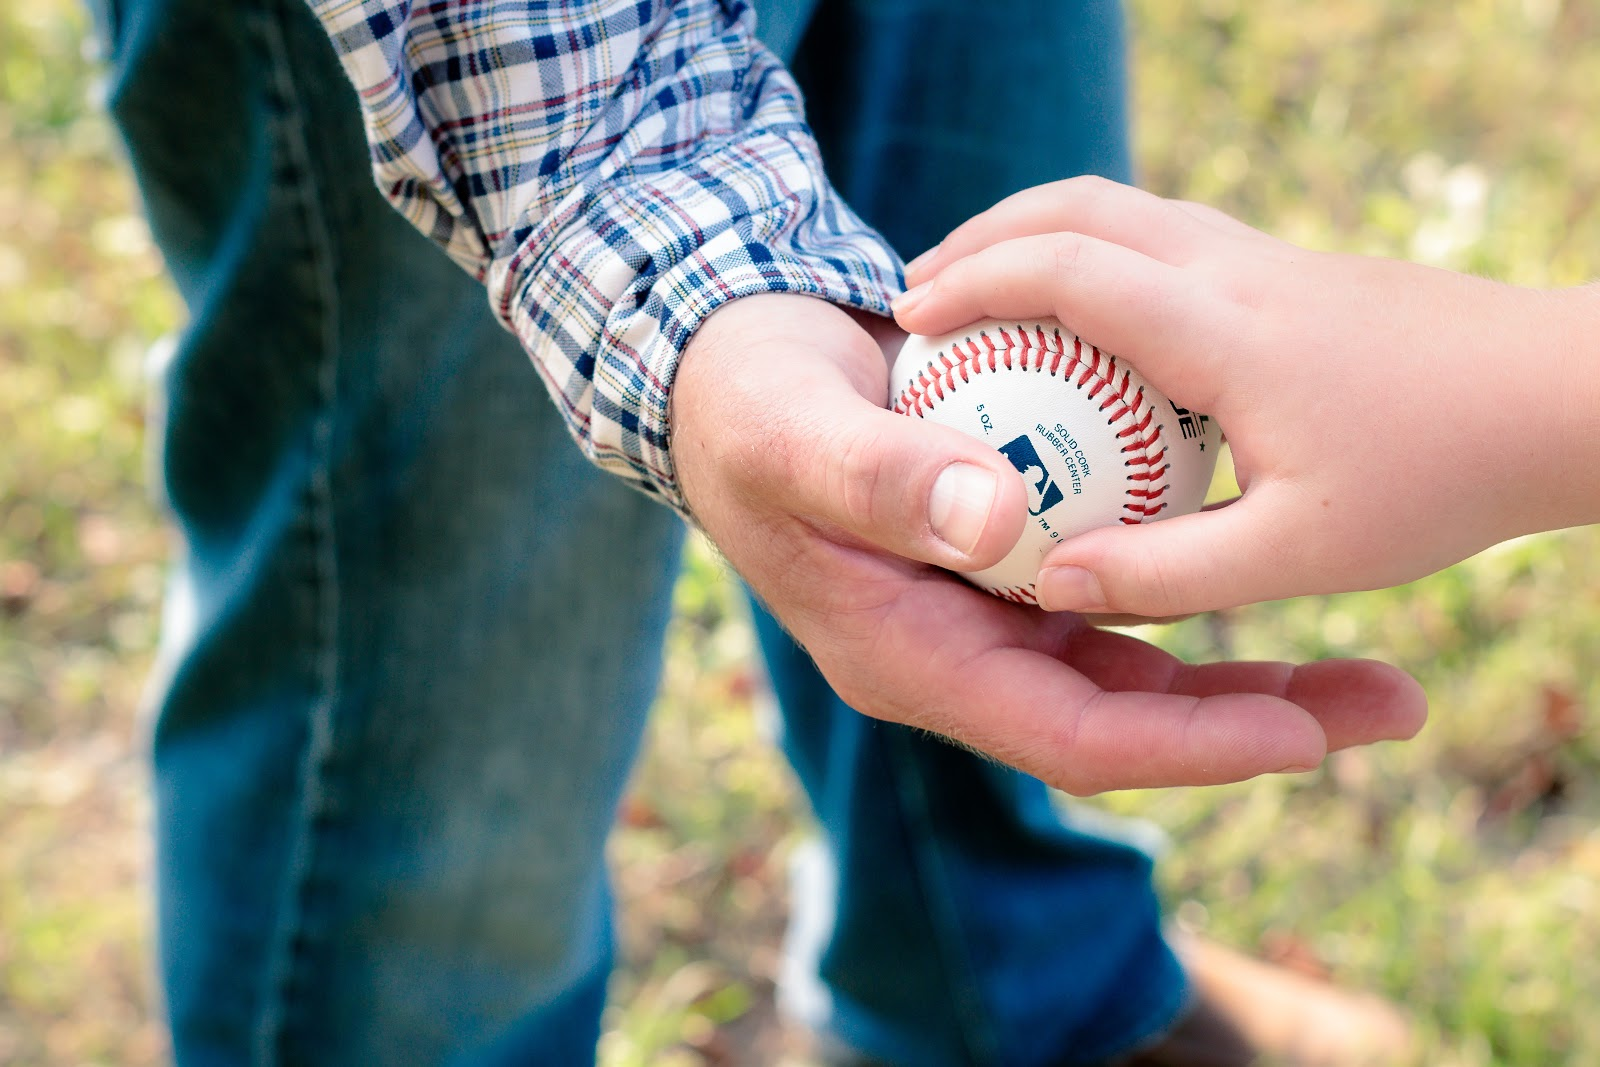 son hands a ball to father